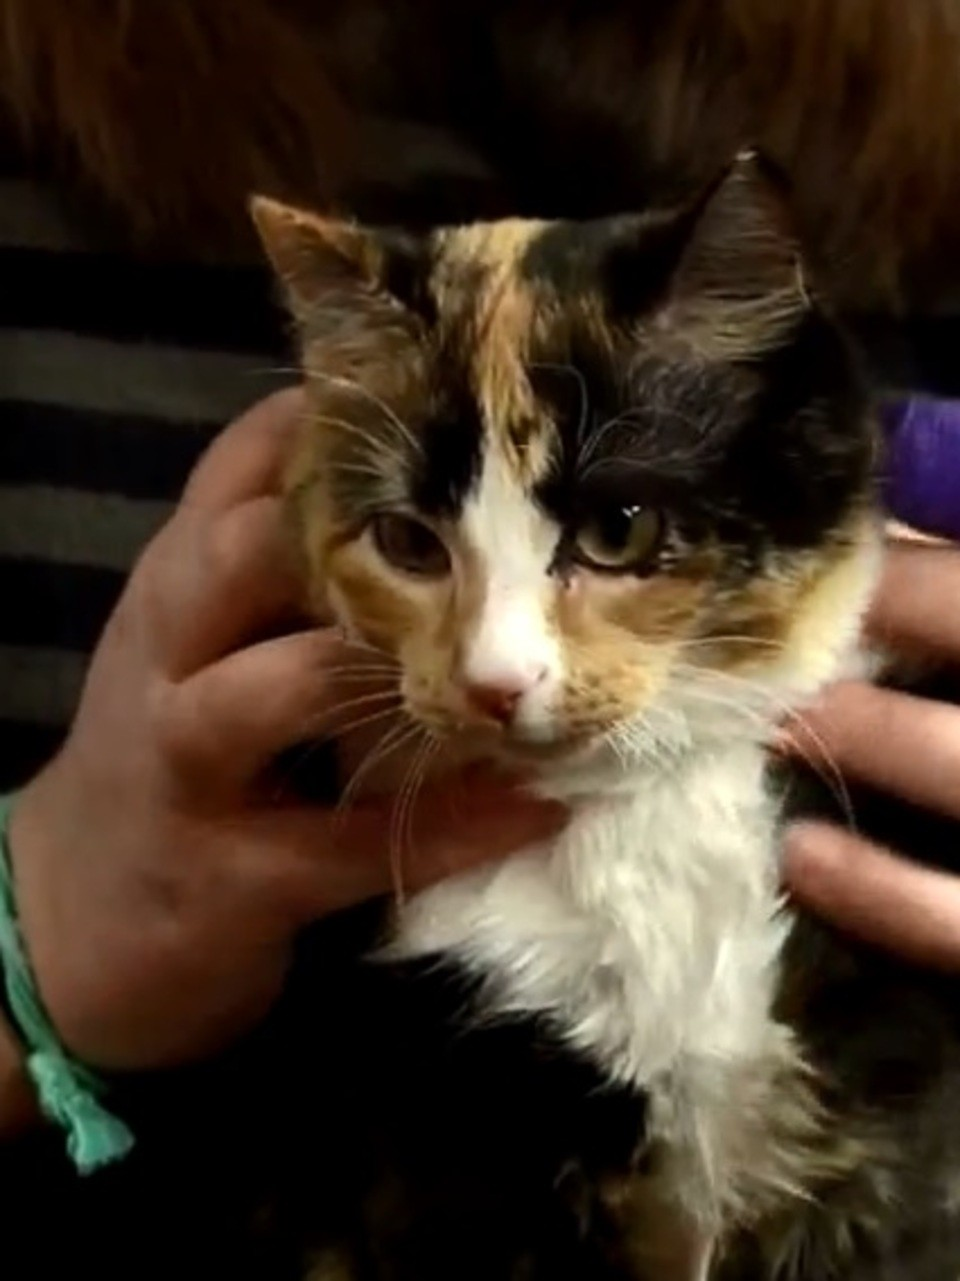 Calico Kittens For Sale Near Me : calico, kittens, Calico, Adoption, Coalition